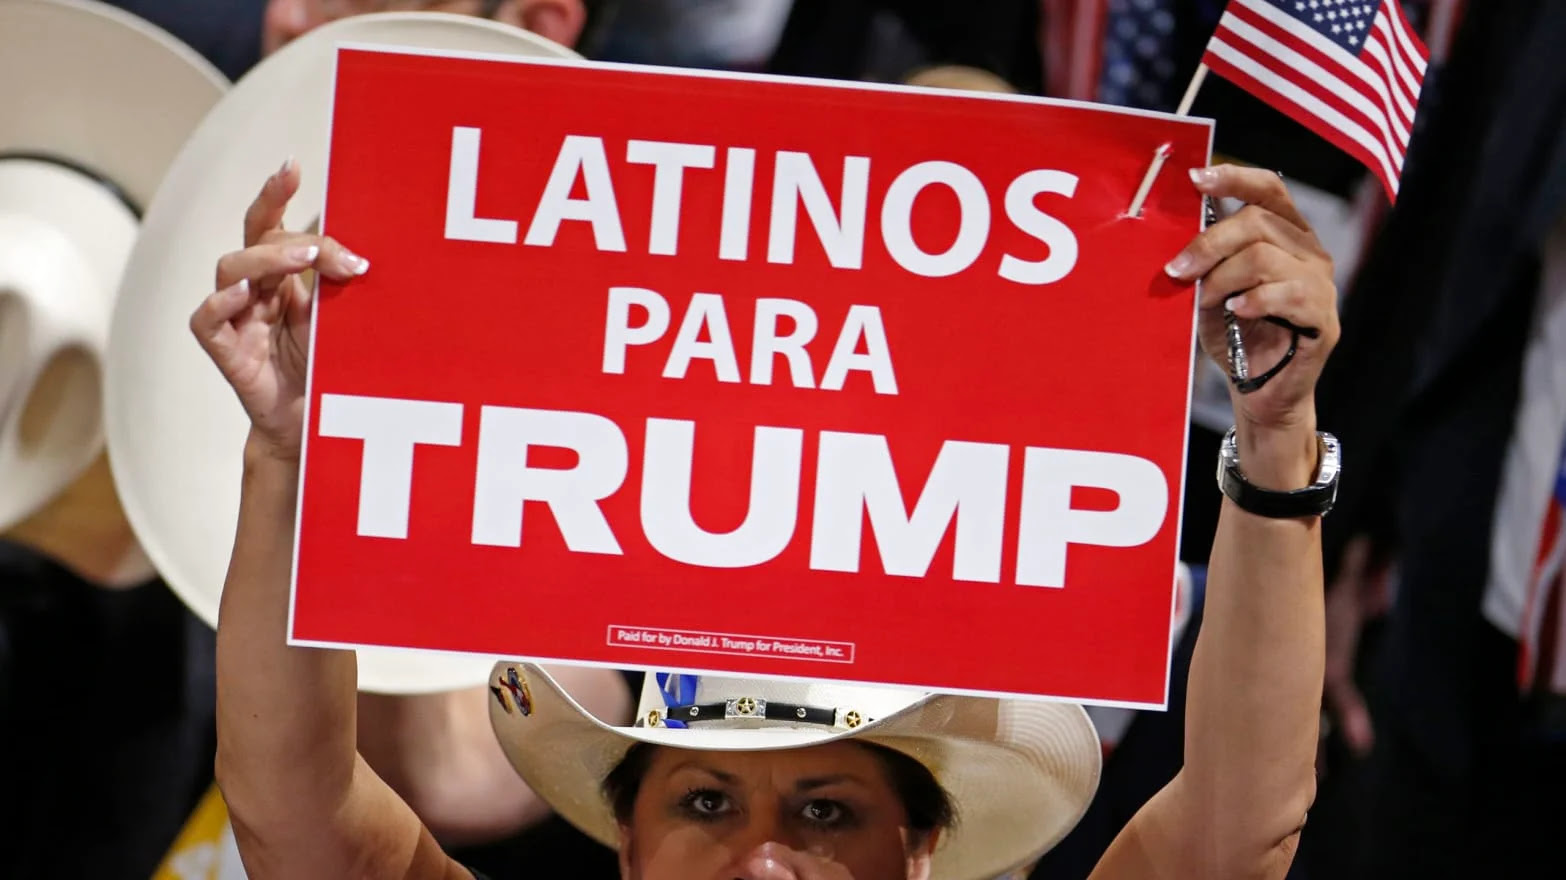 A woman at a rally for Trump holding a sign reading ''Latinos Para Trump''